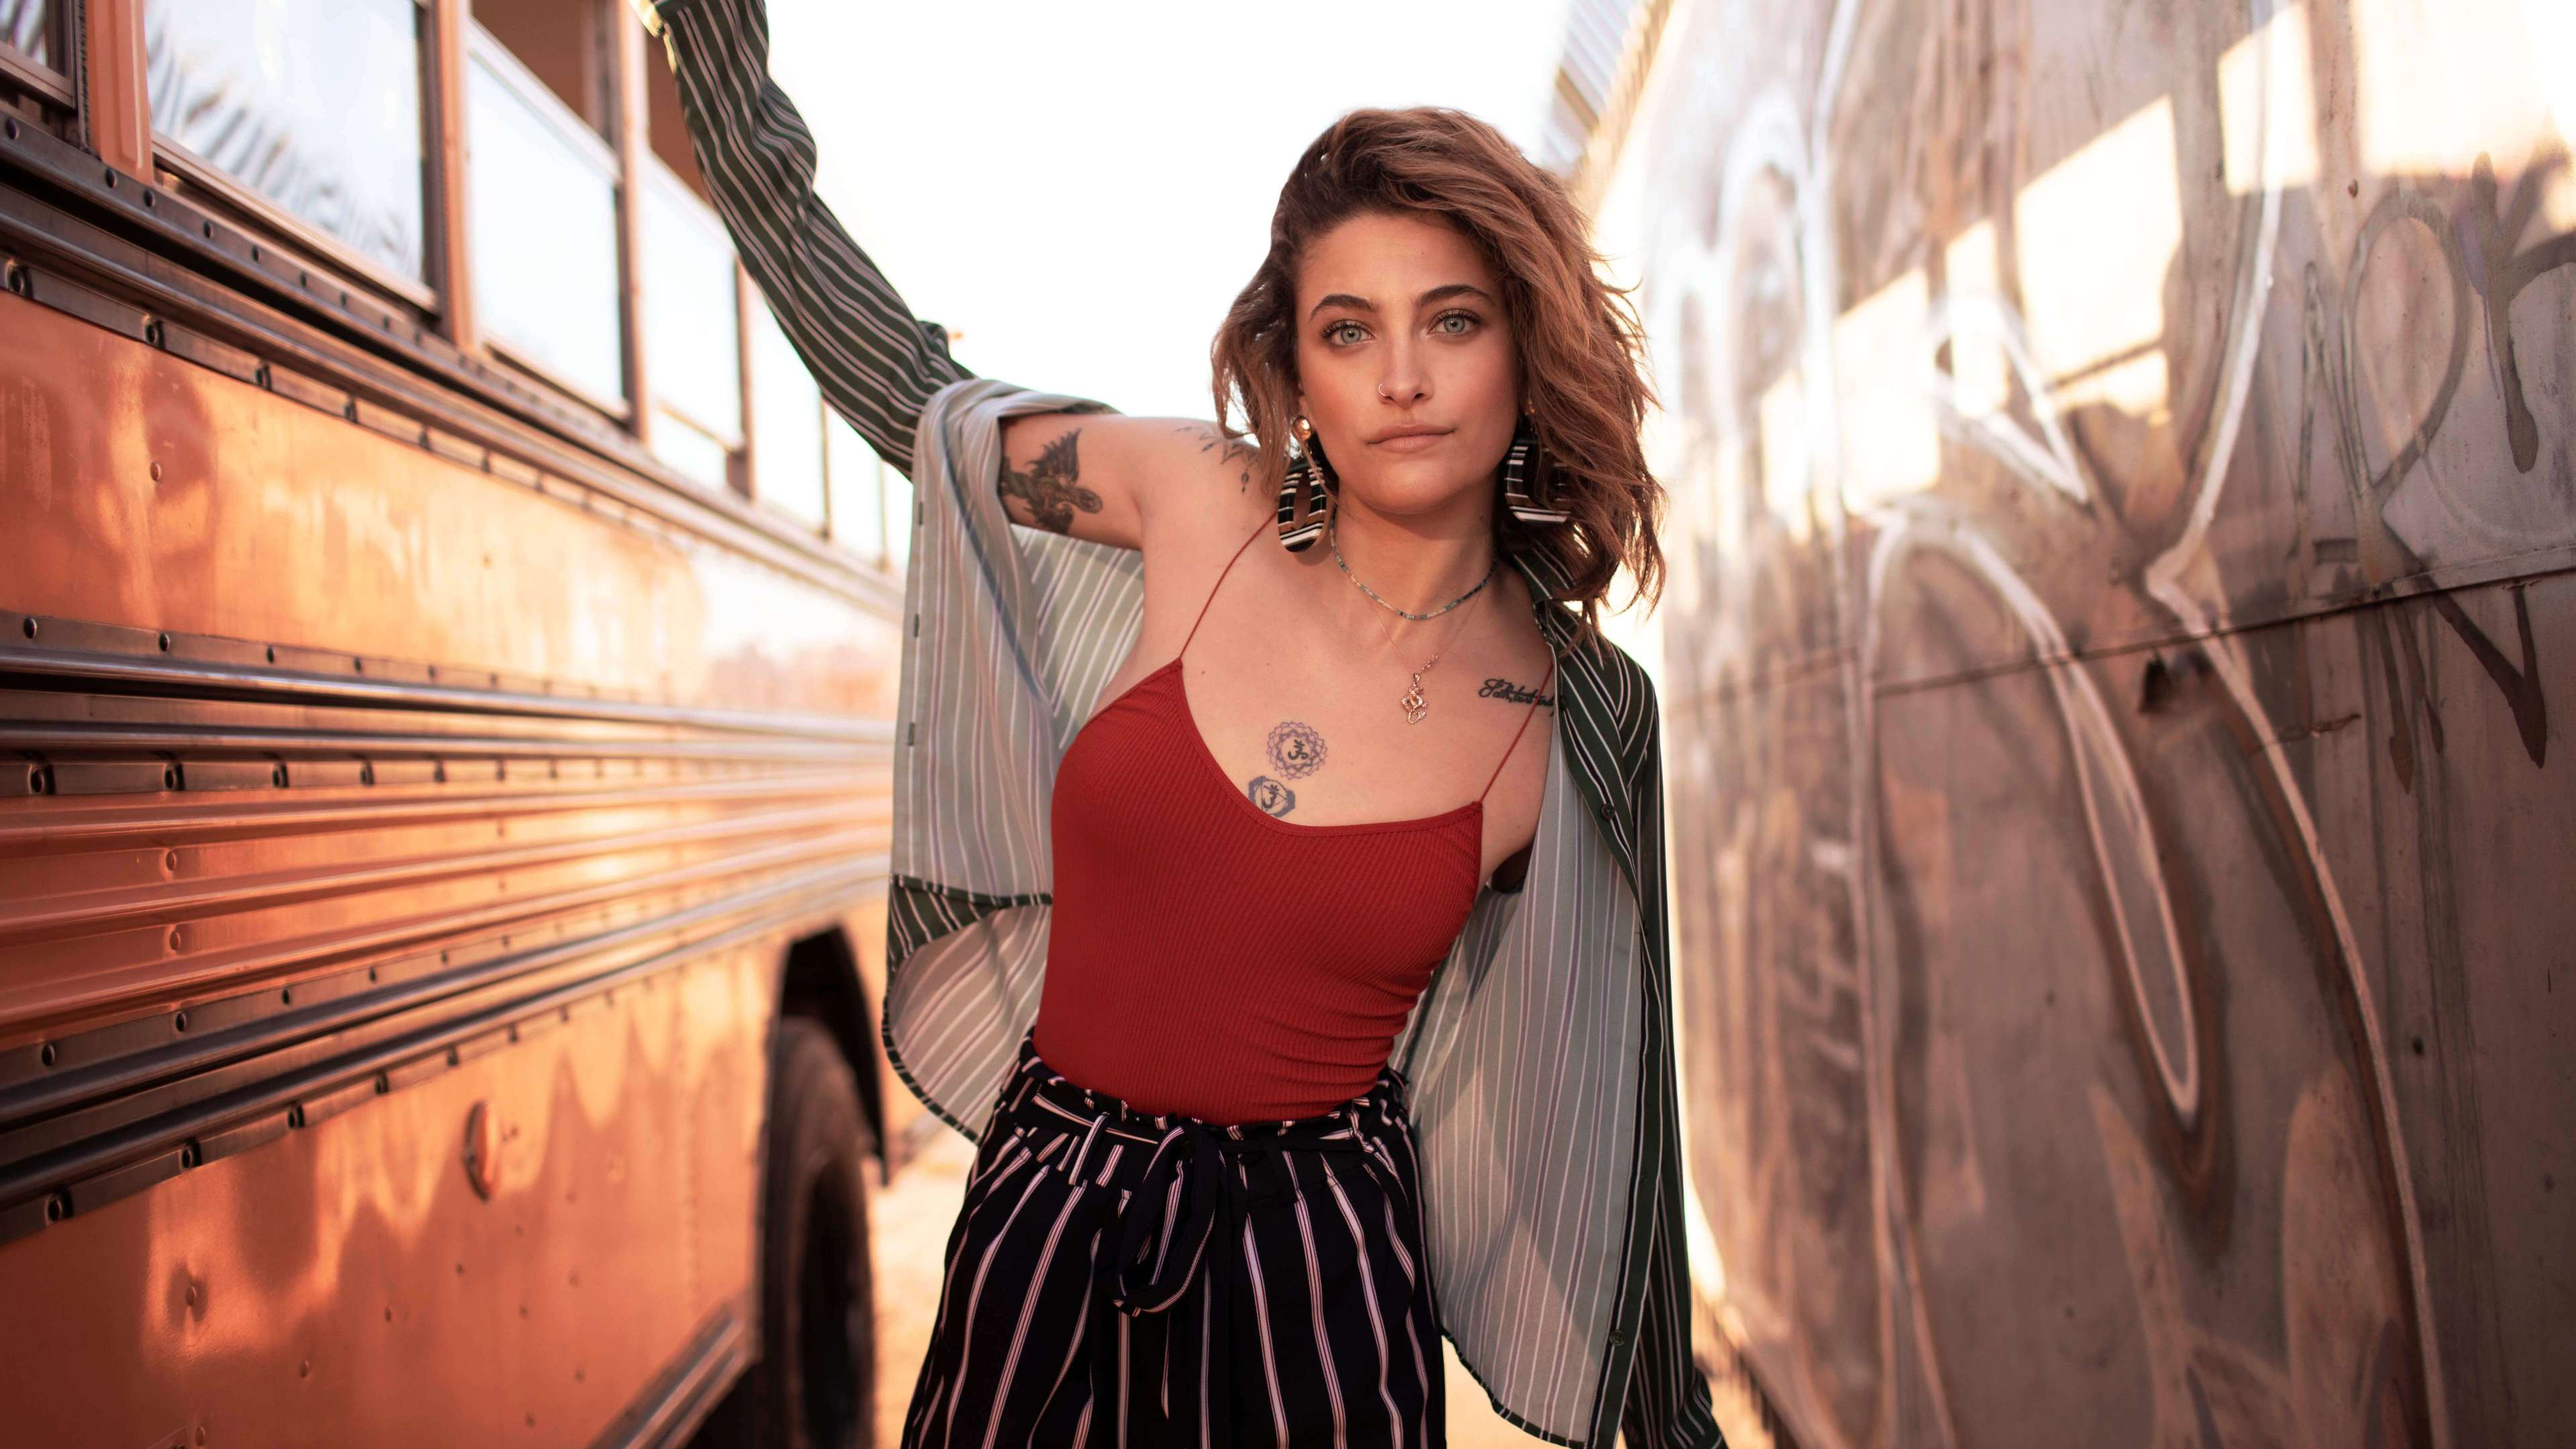 paris jackson 1543104574 - Paris Jackson - paris jackson wallpapers, hd-wallpapers, girls wallpapers, celebrities wallpapers, 5k wallpapers, 4k-wallpapers